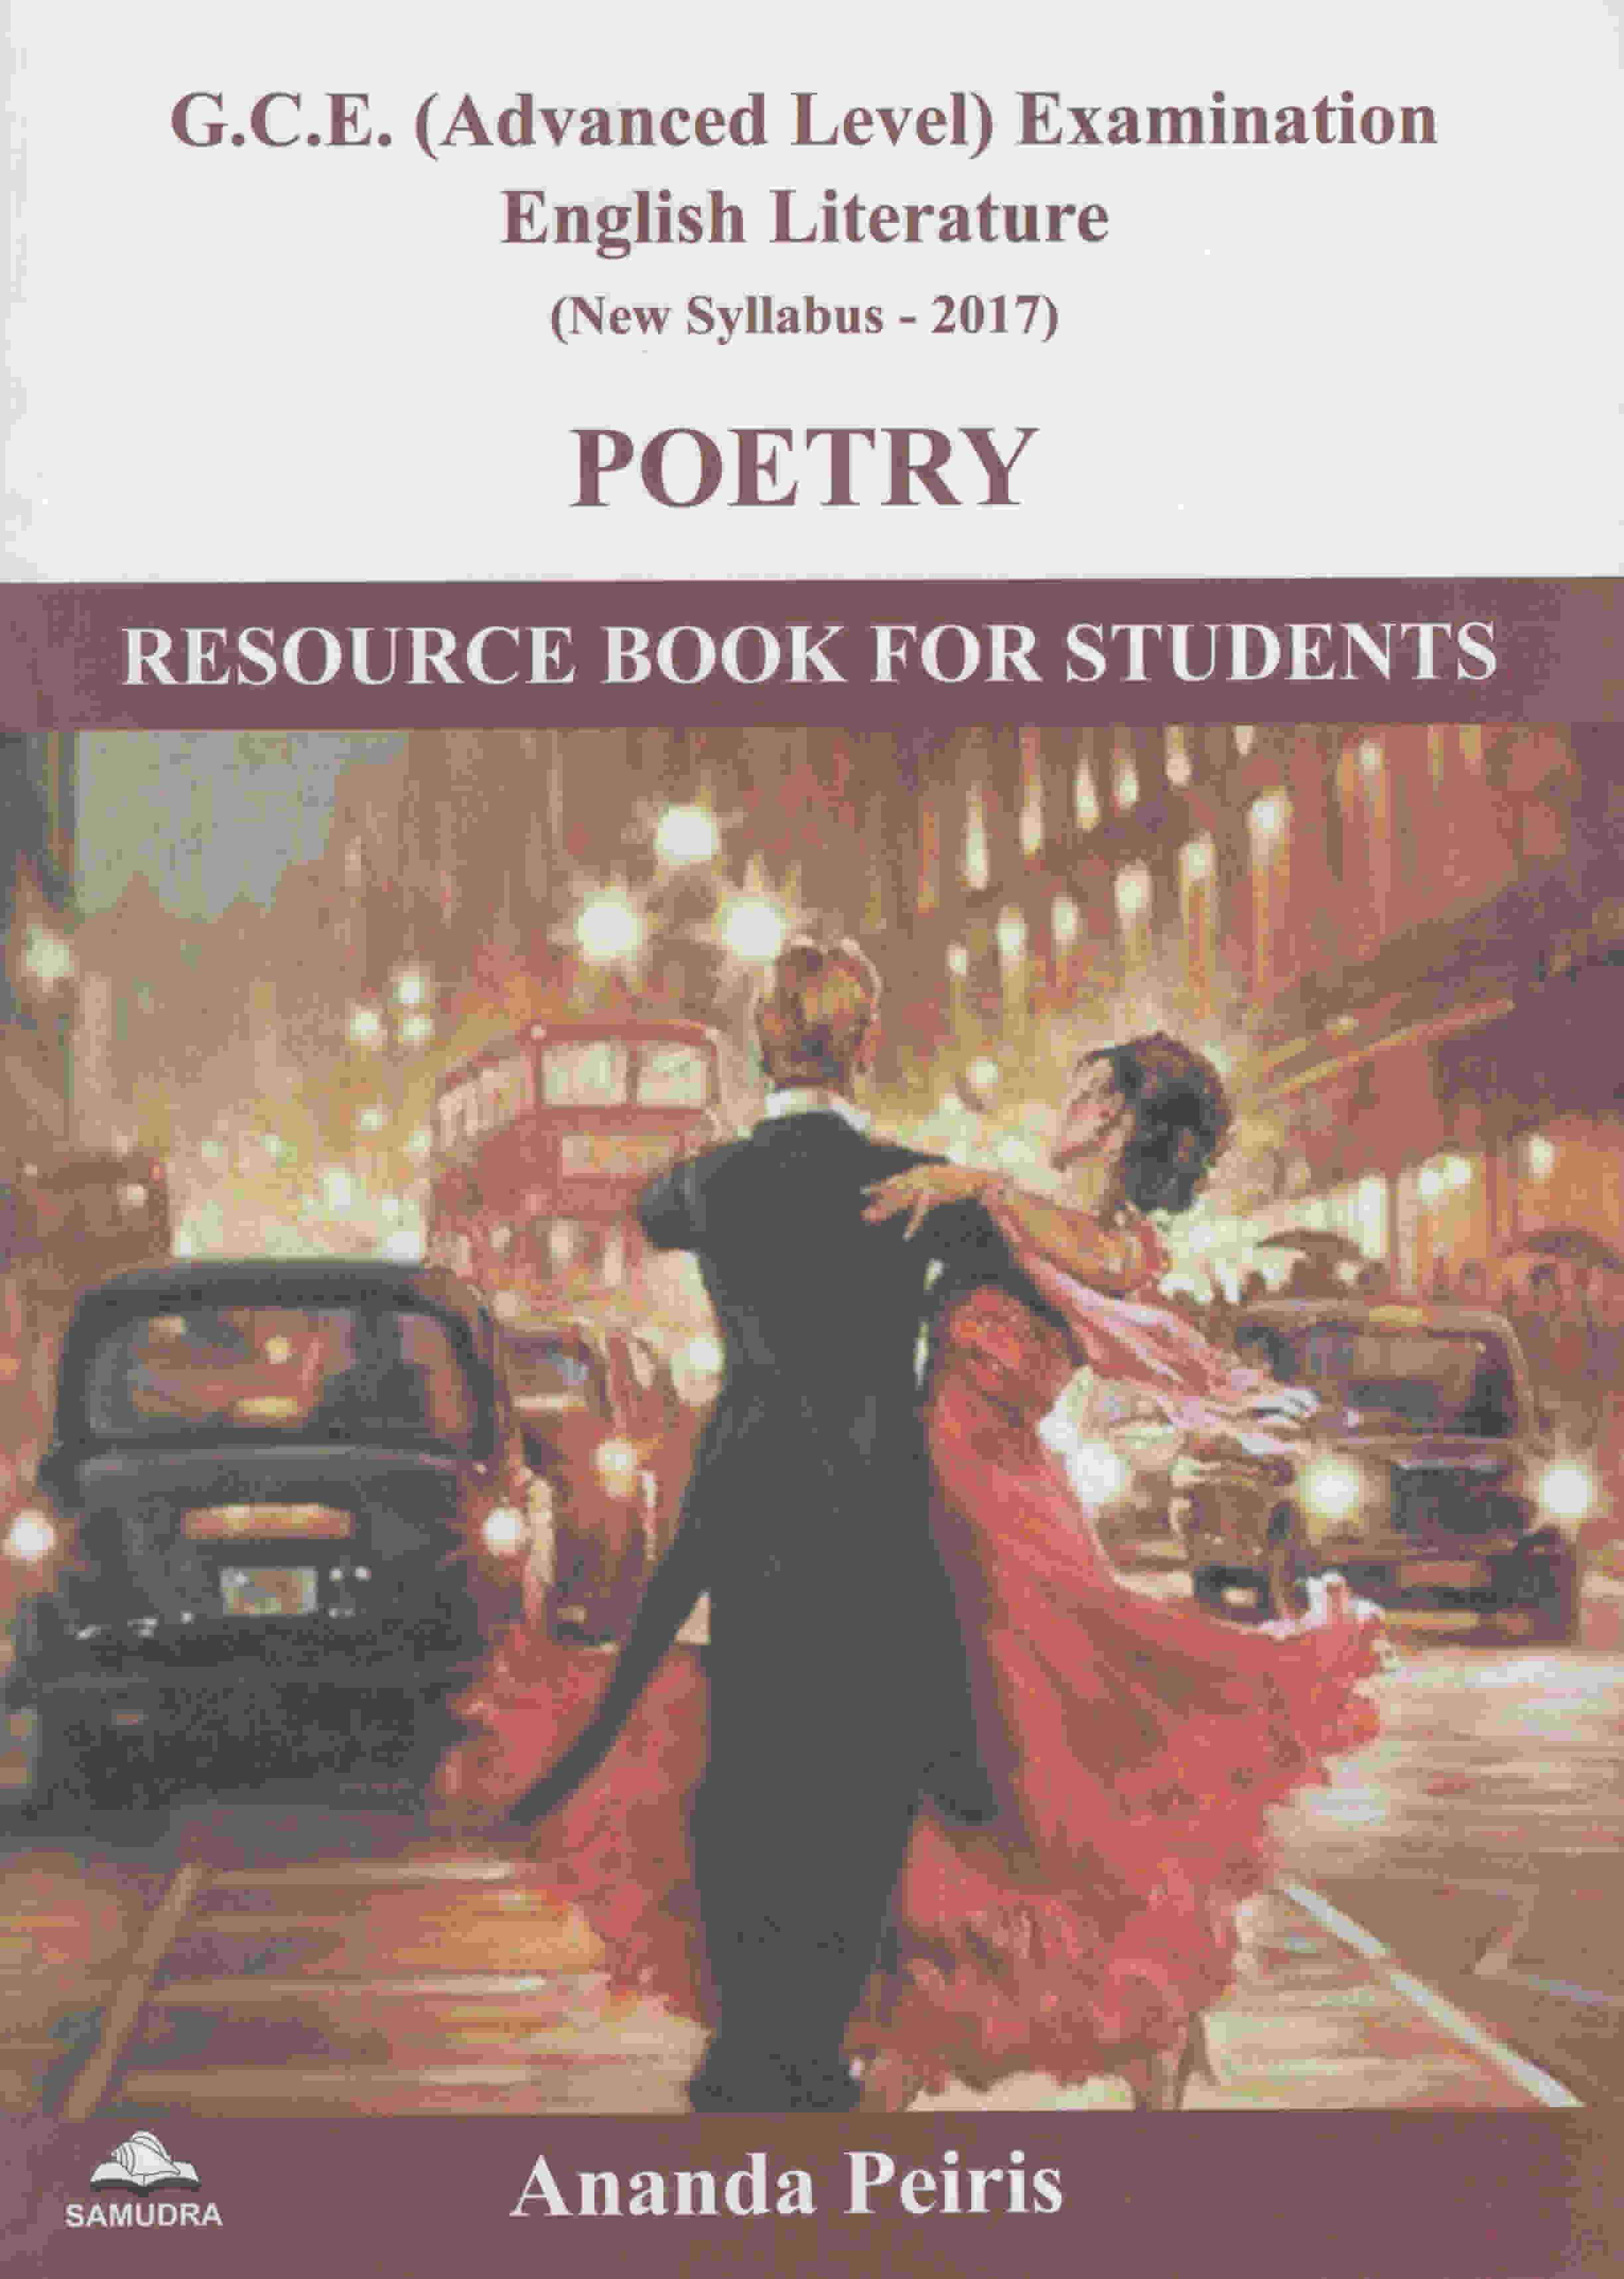 G.C.E. A/L POETRY RESOURCE BOOK FOR STUDENTS